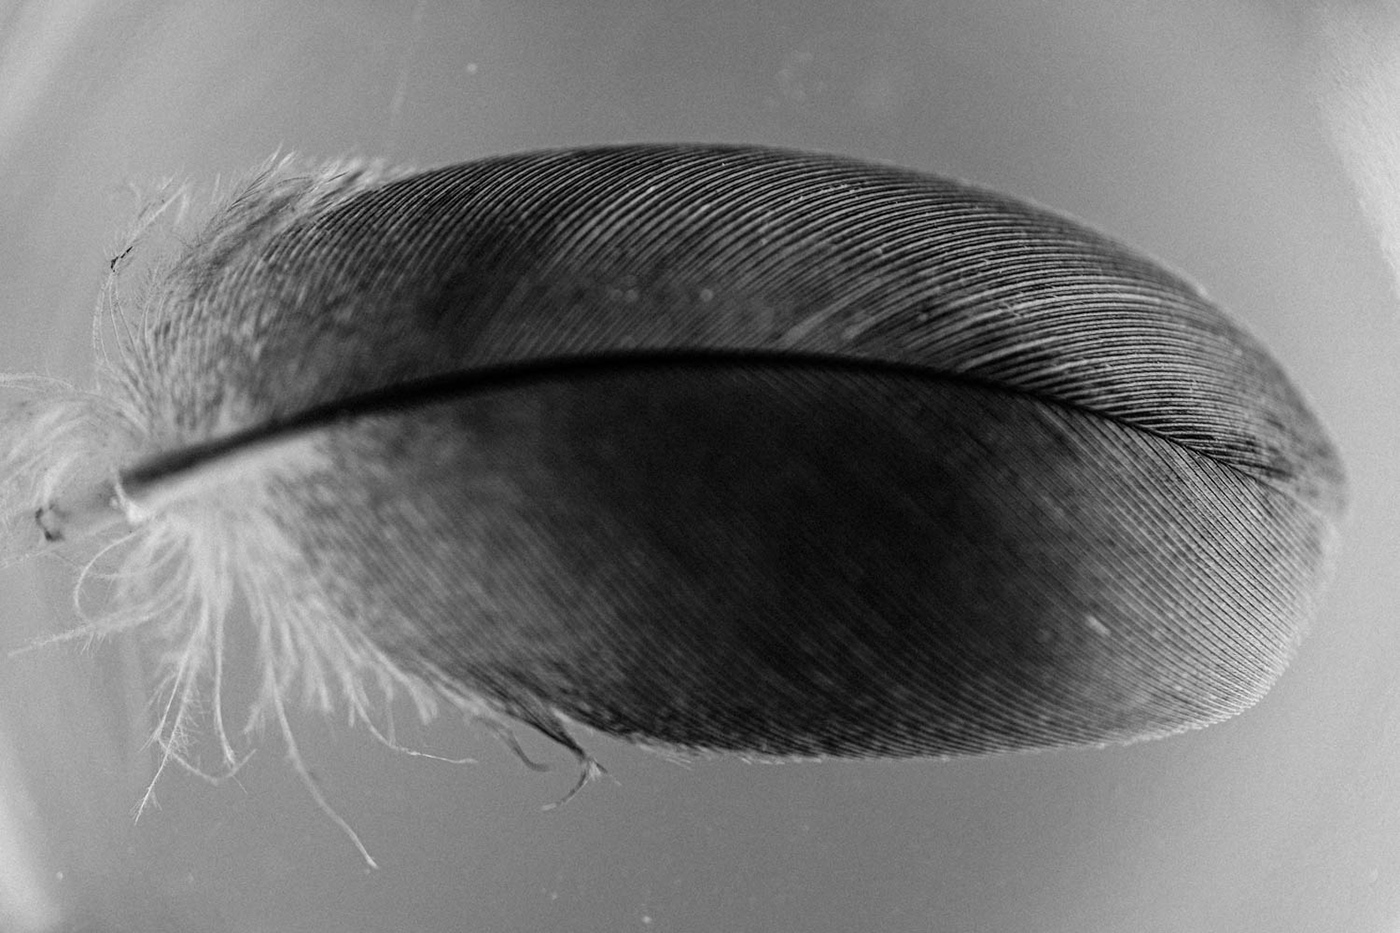 Black and white feather photograph